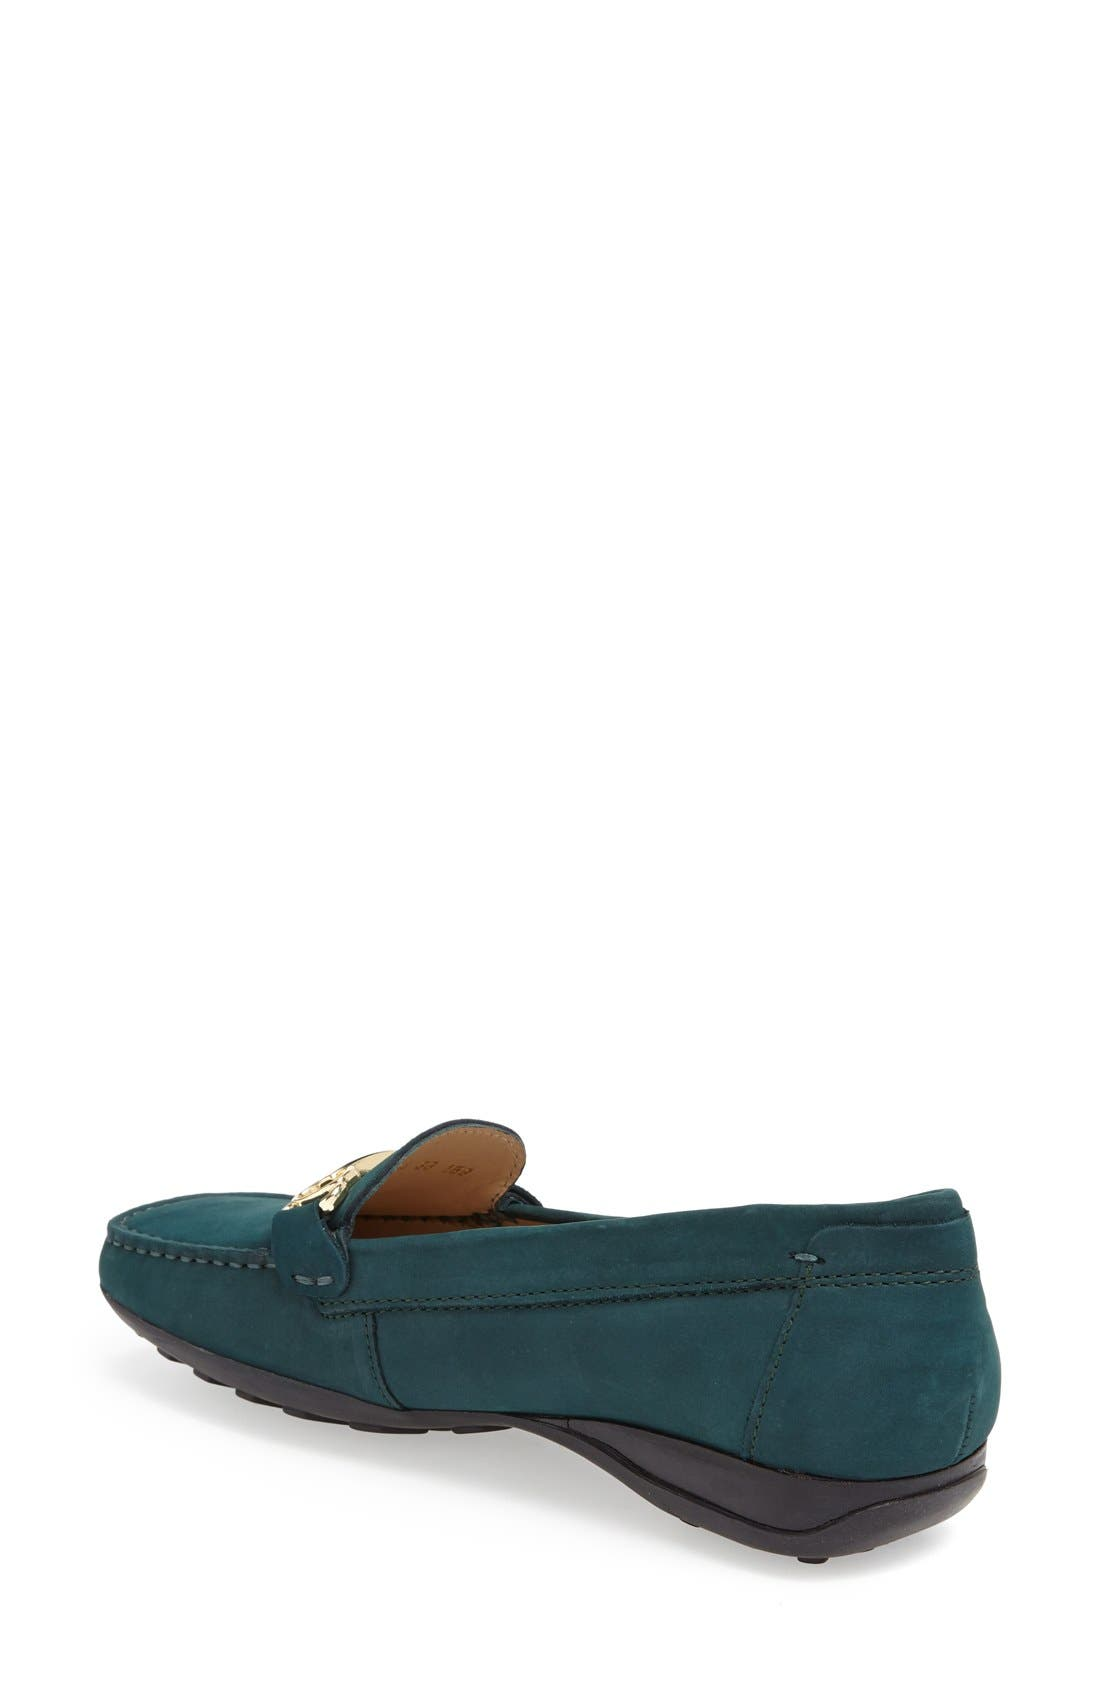 Euro 67 Loafer,                             Main thumbnail 7, color,